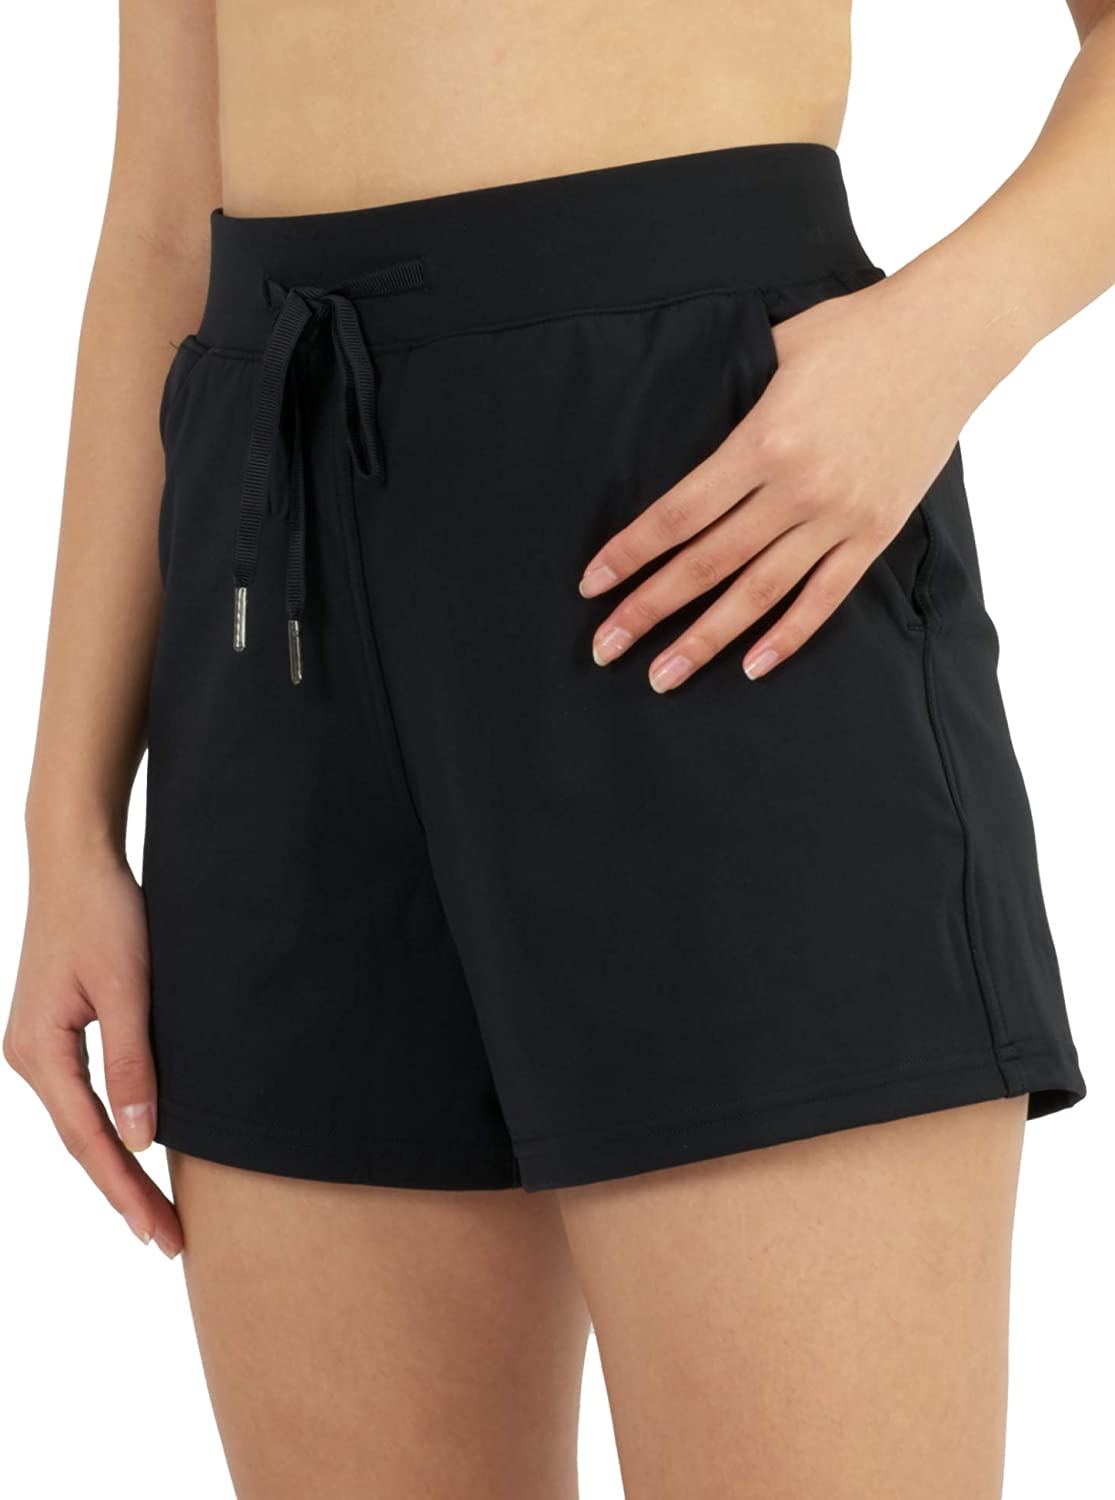 AJISAI Women's Hiking 67% OFF of fixed price Travel Shorts Lightweight Popular brand in the world with Pockets Yog